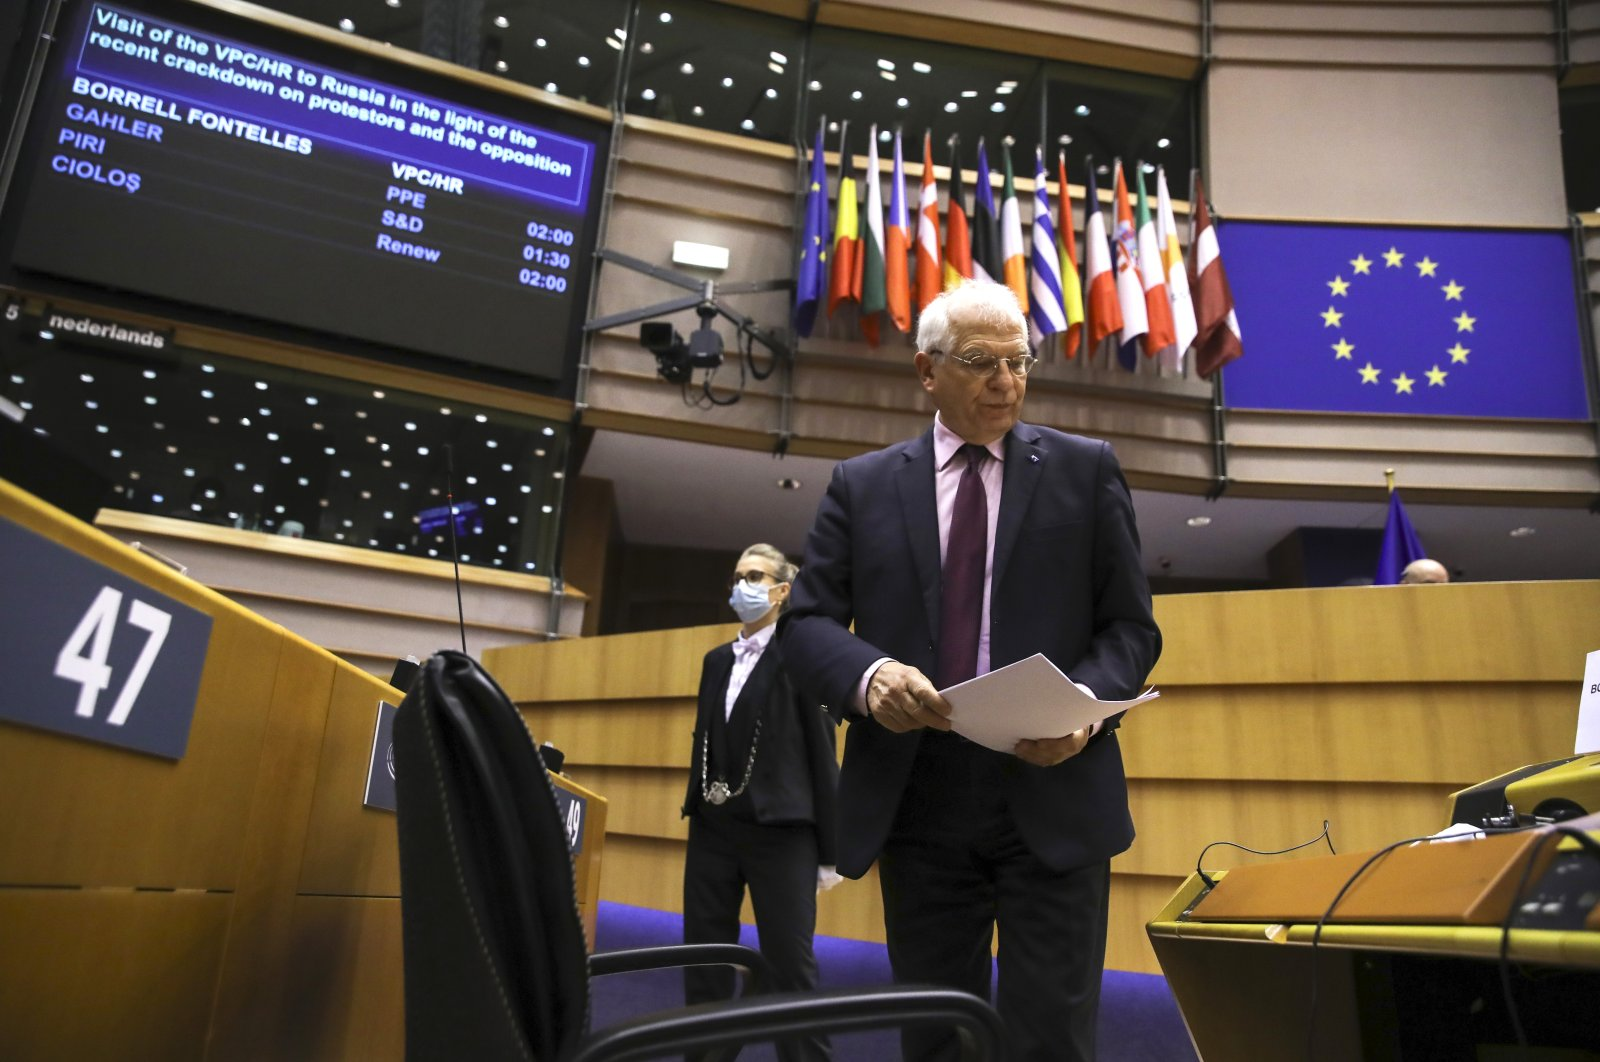 European Union foreign policy chief Josep Borrell arrives for a debate, regarding his recent trip to Russia, during a plenary session at the European Parliament in Brussels, Tuesday, Feb. 9, 2021. (Pool via AP)